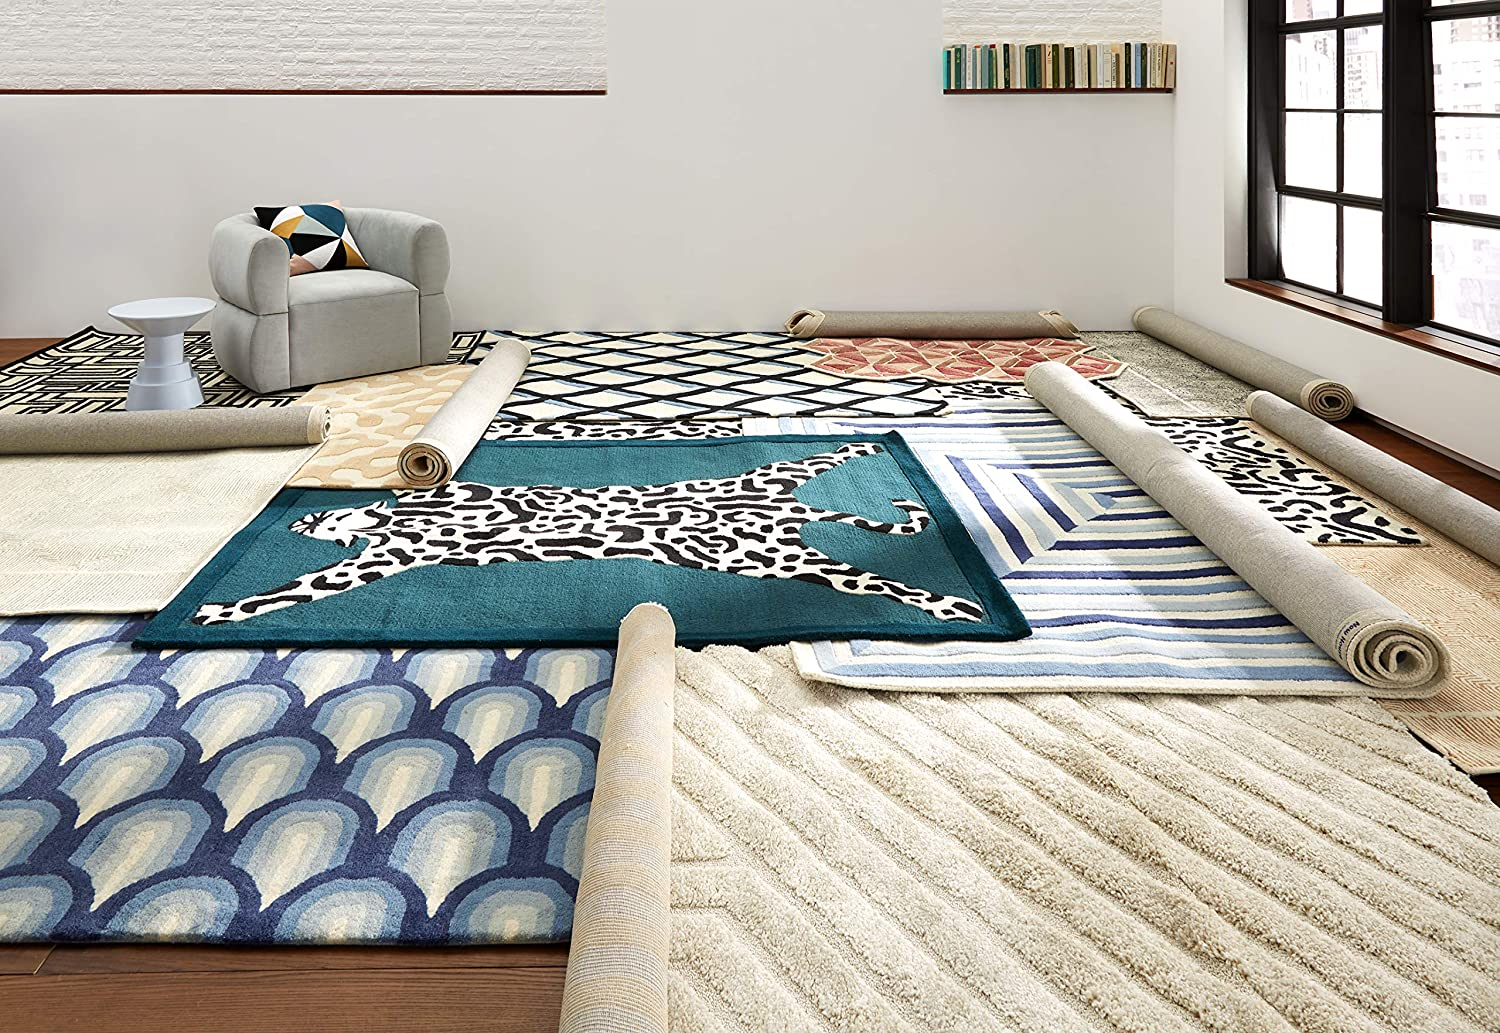 Now House by Jonathan Adler Matrix Collection Area Rug, 2'3